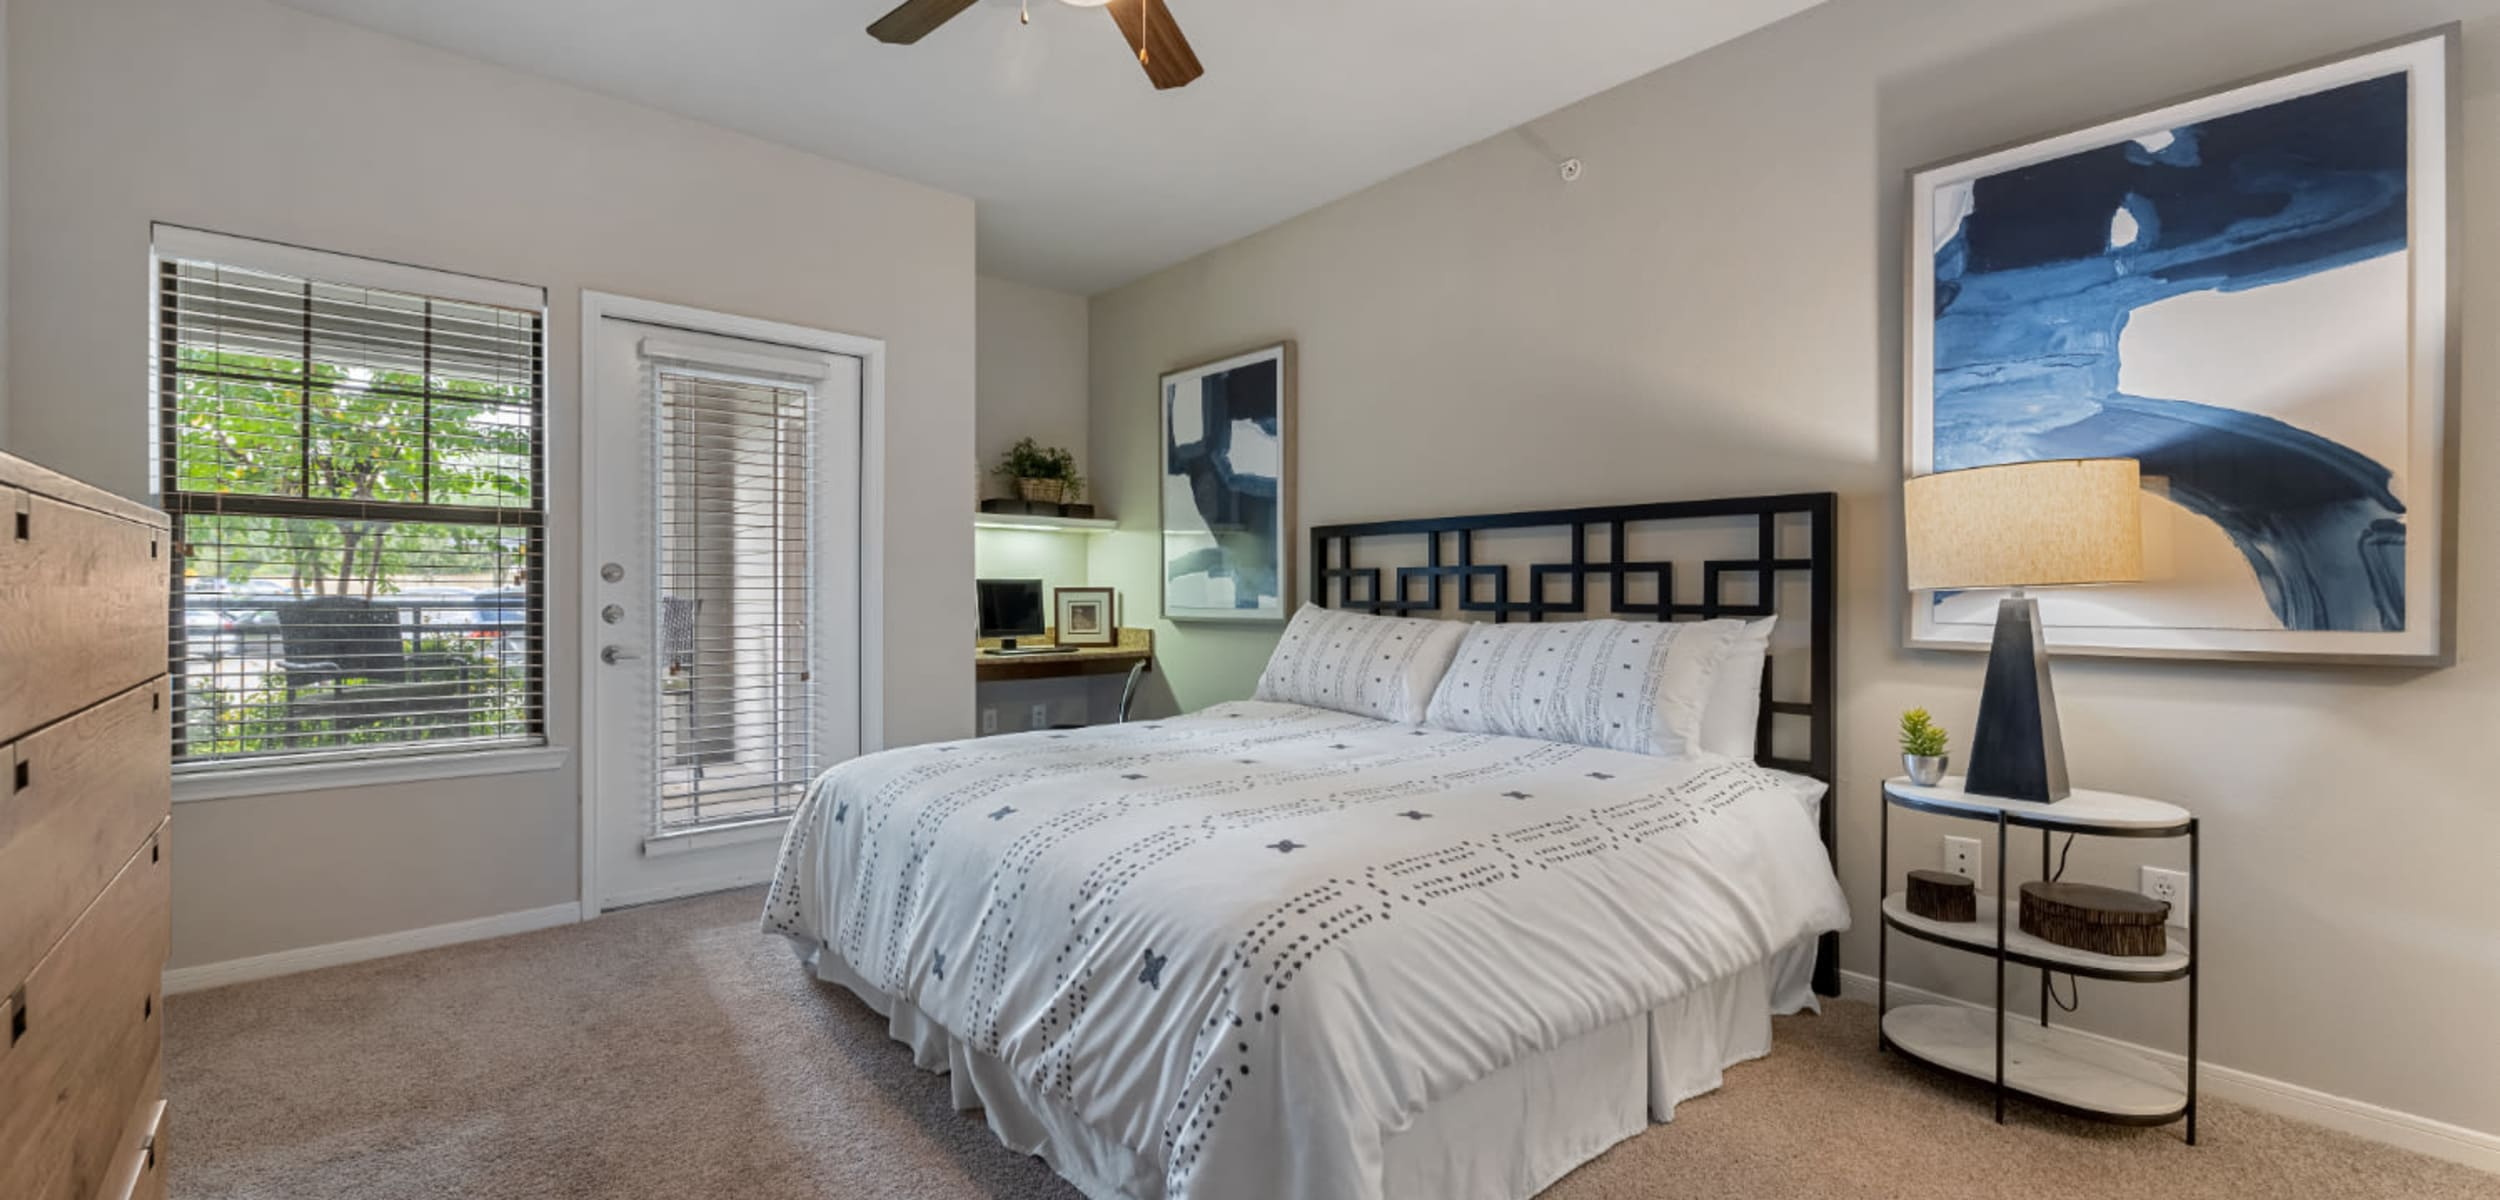 Spacious bedroom with computer nook and access to private balcony at Marquis at Sugar Land in Sugar Land, Texas